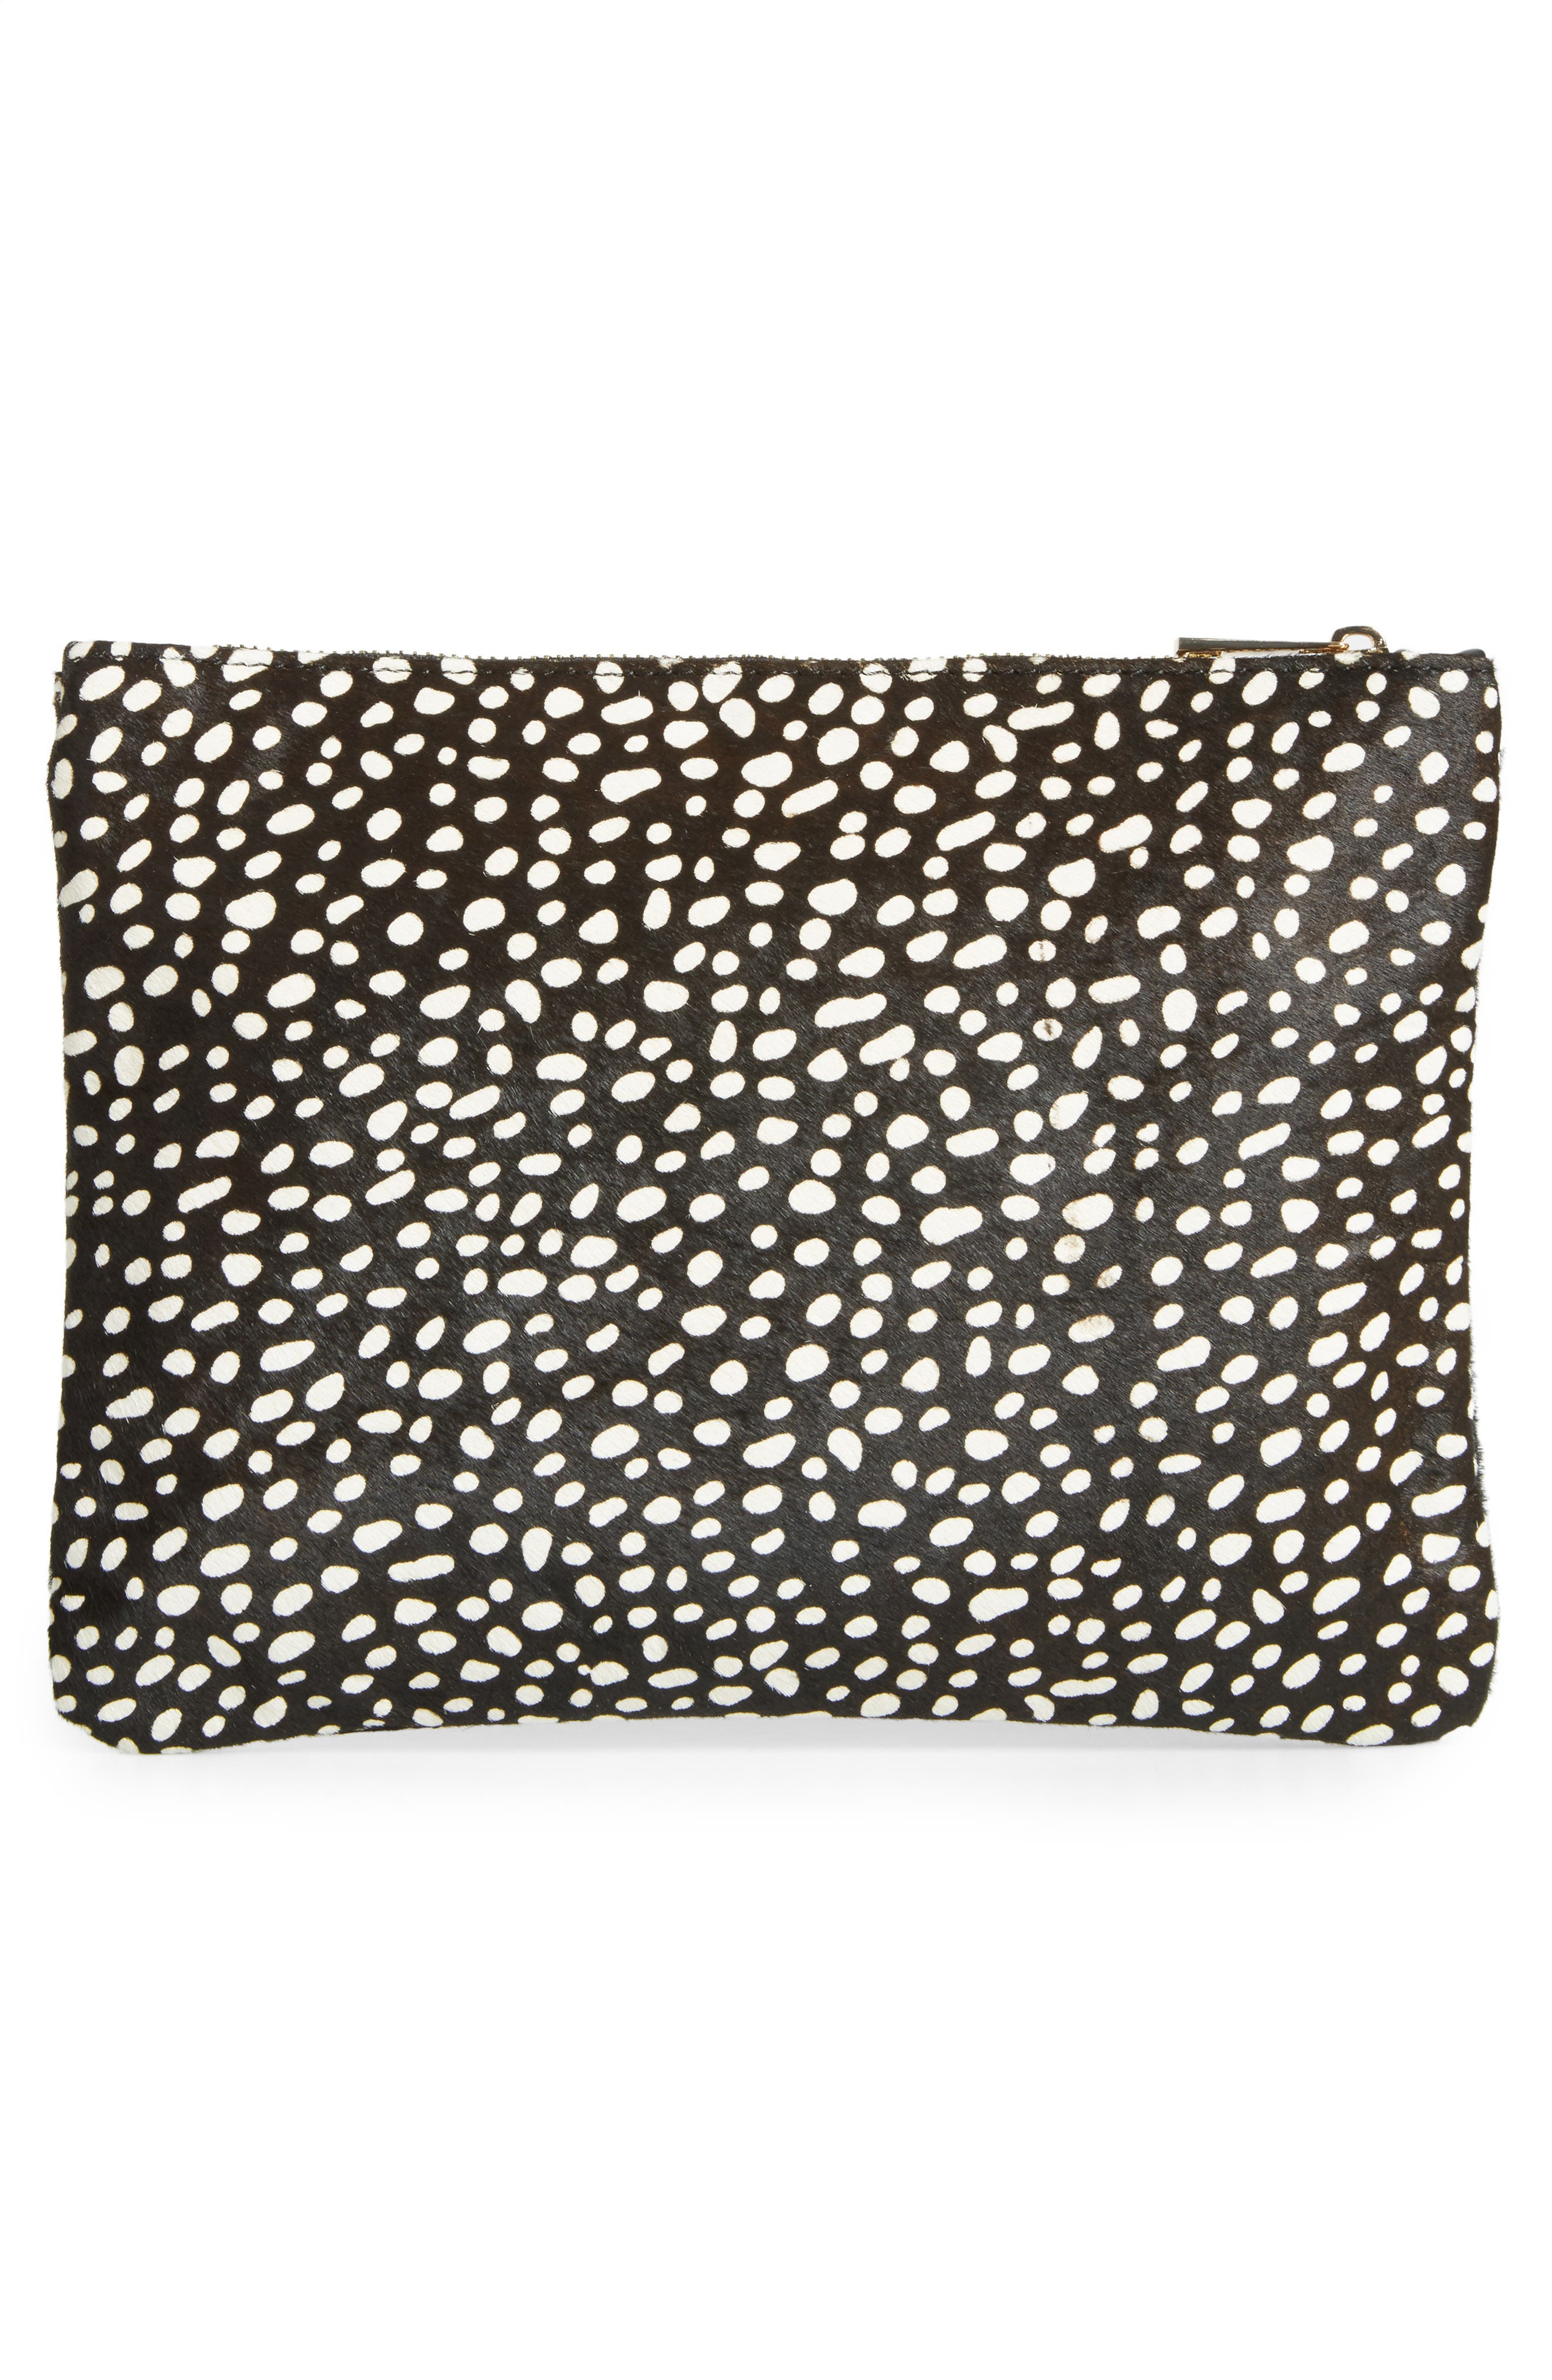 'Dolce' Genuine Calf Hair Clutch,                             Alternate thumbnail 3, color,                             001